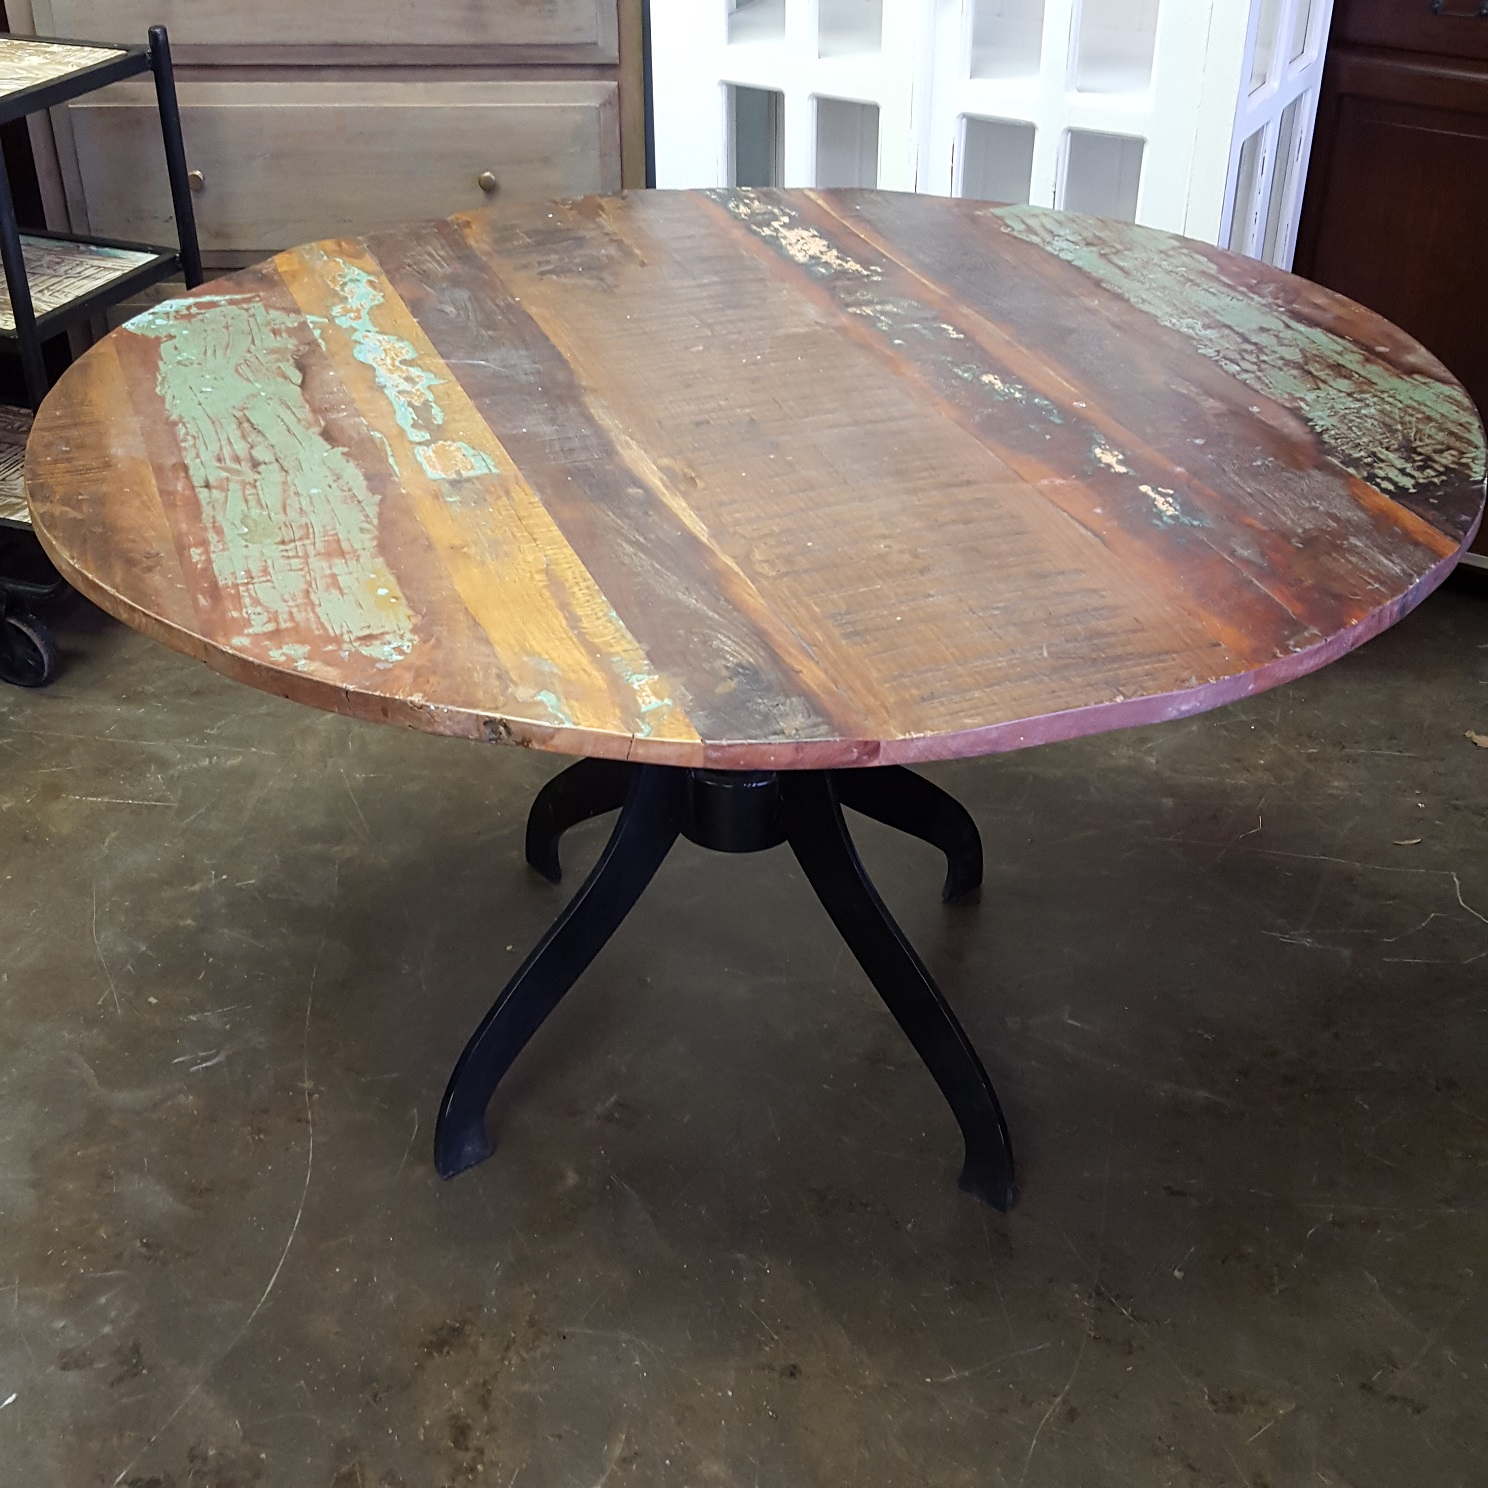 Round Metal and Wood Dining Table Nadeau Memphis : VA101 520 Wood Iron Dining Table from www.furniturewithasoul.com size 1488 x 1488 jpeg 591kB